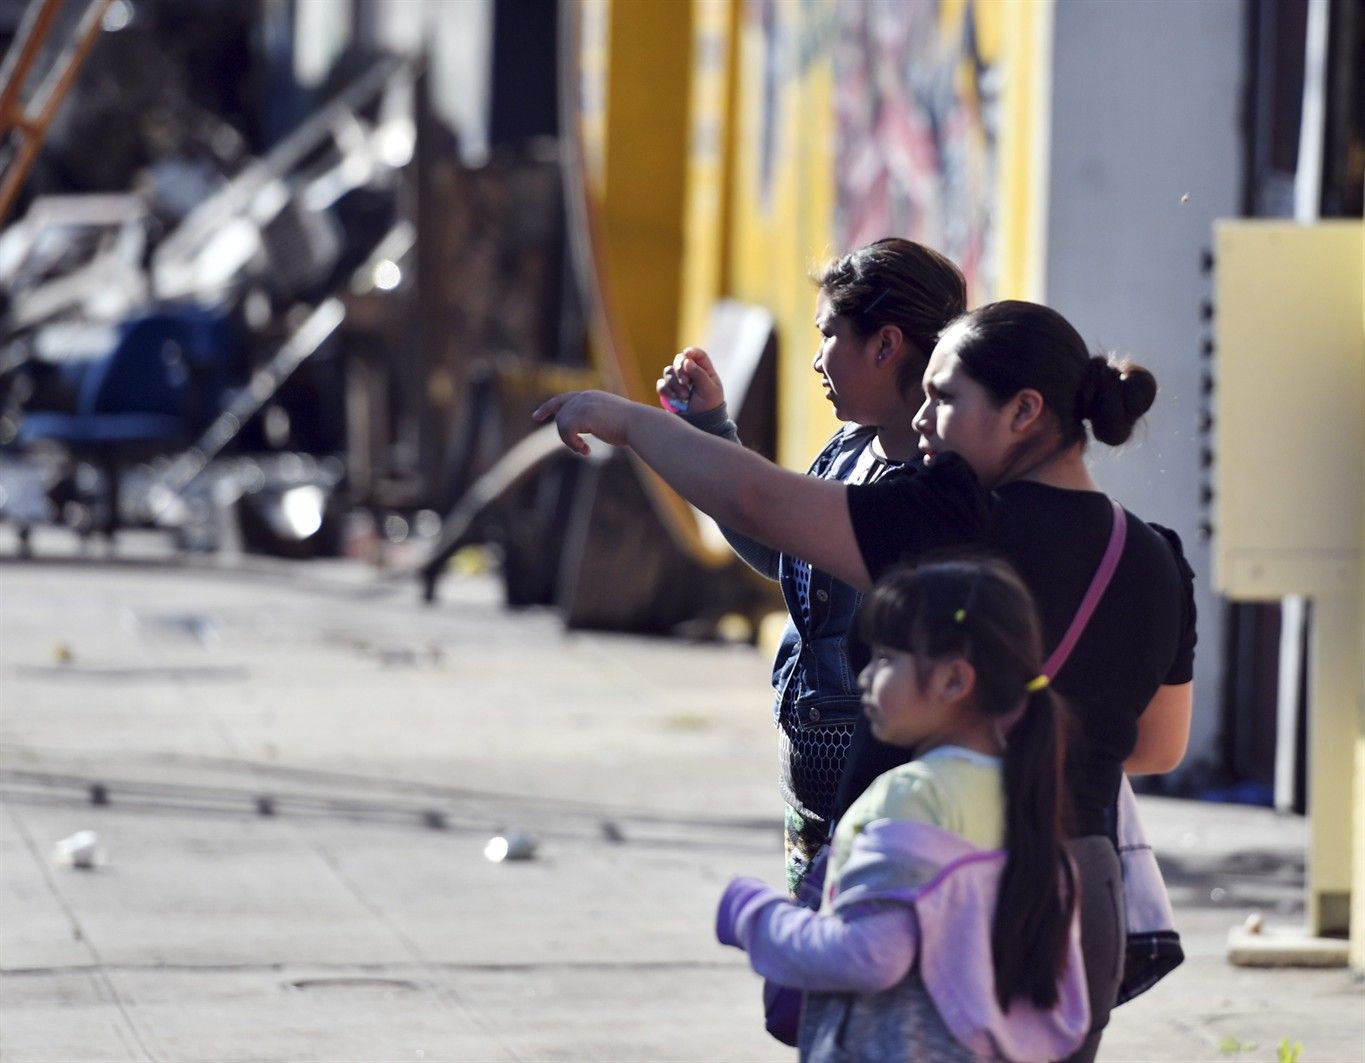 Death toll in warehouse fire rises to 24, with more expected